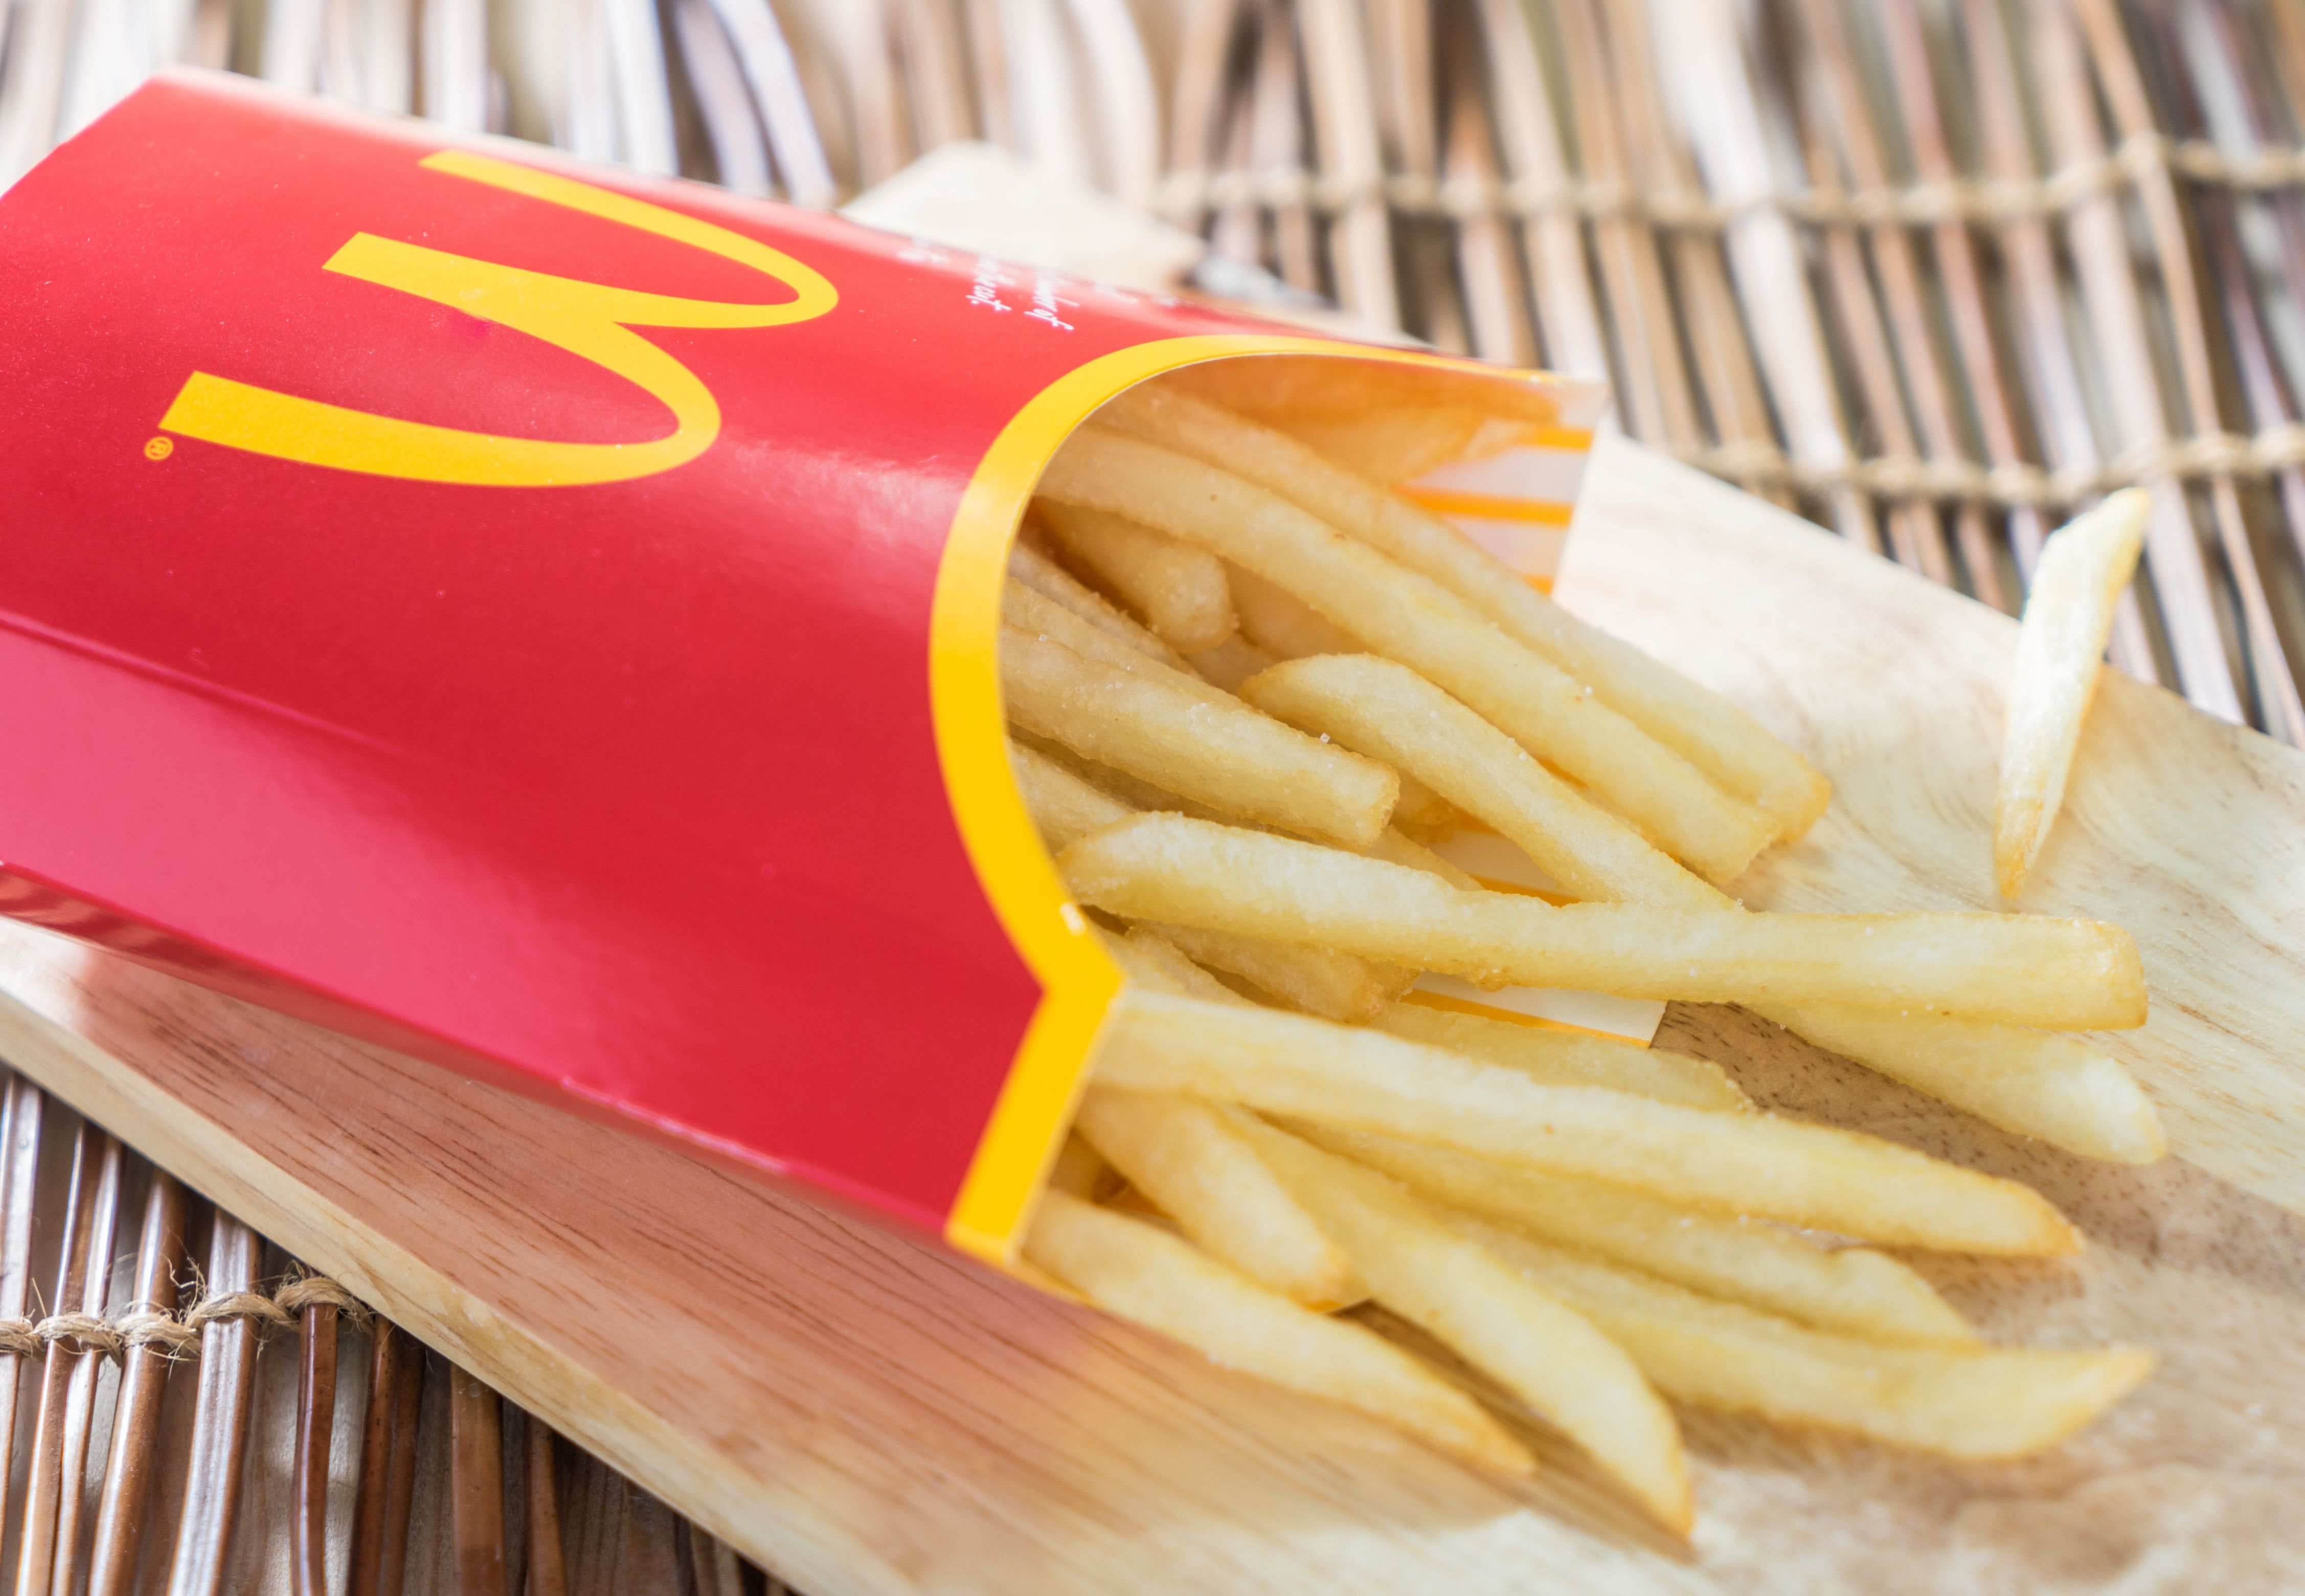 Mac Donald Free Fries For 2018